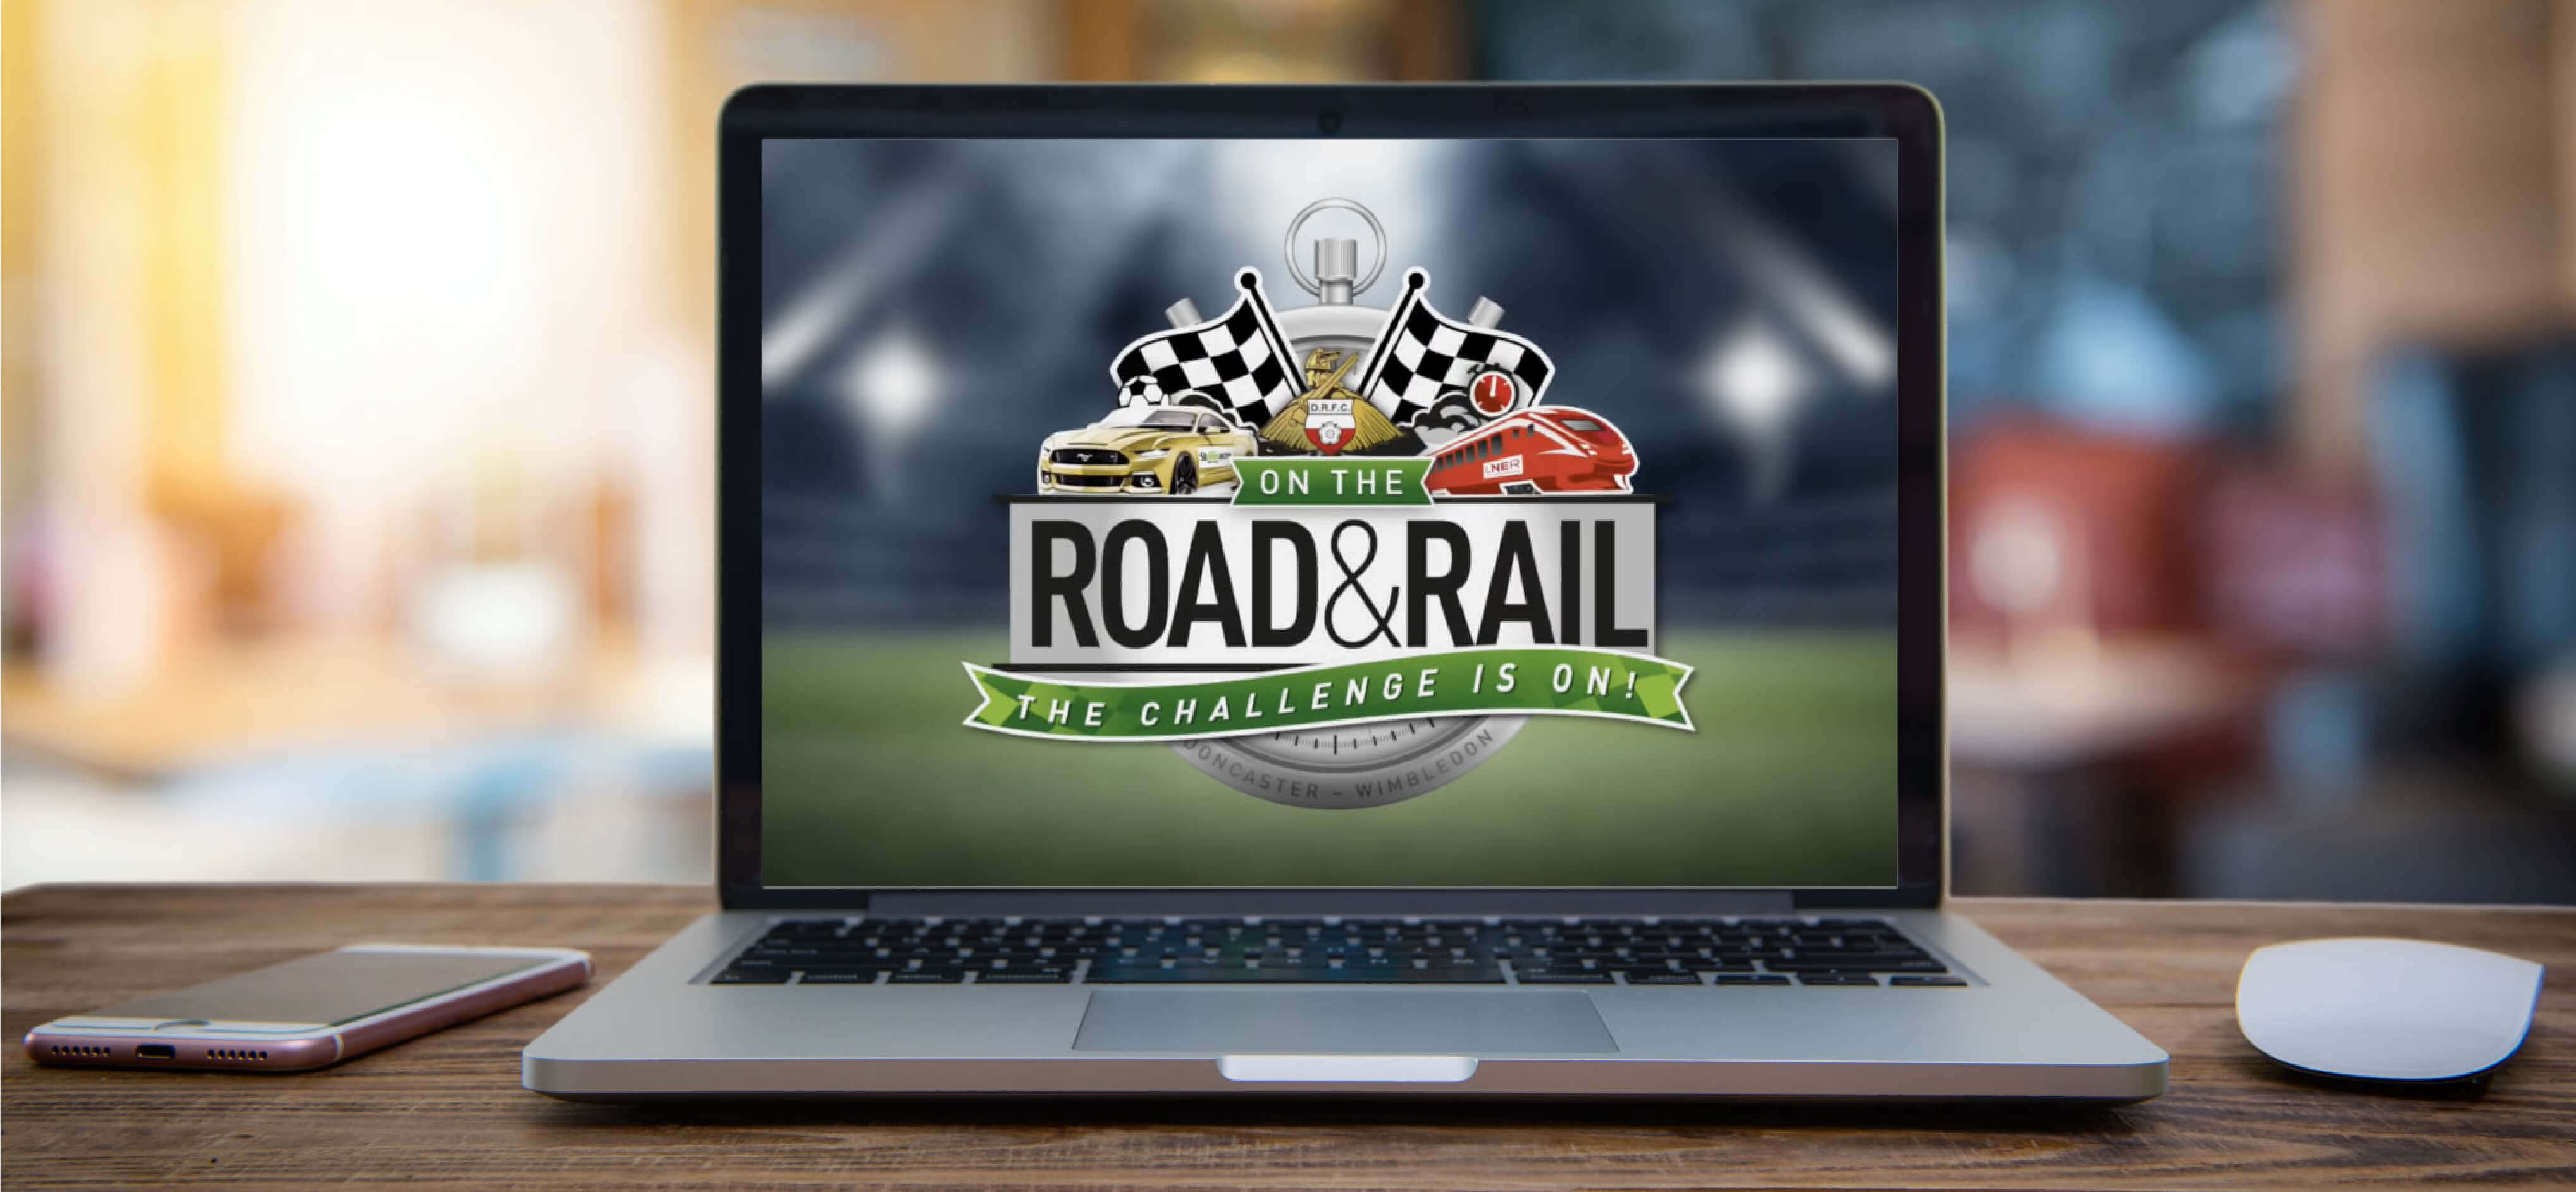 Stoneacre On the Road and Rail YouTube Clip on Laptop